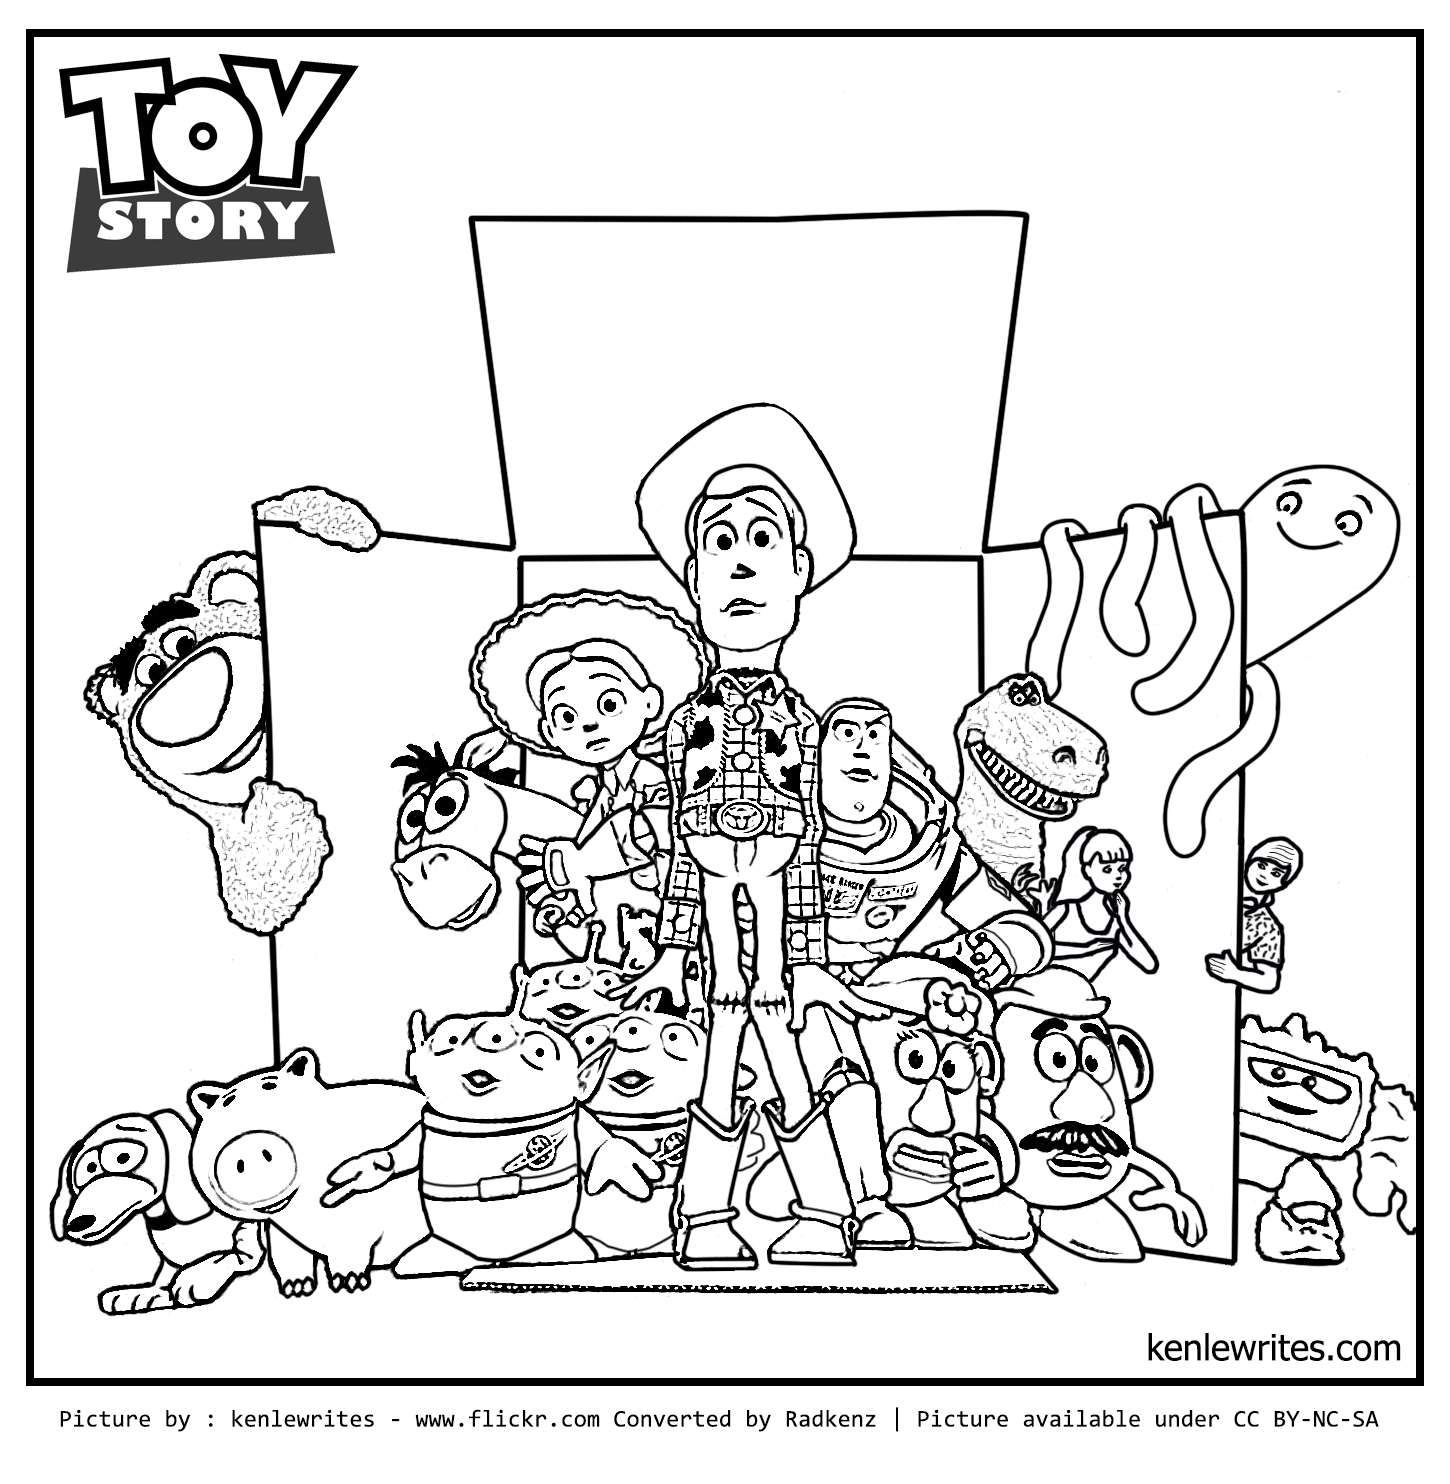 buzz toy story 4 coloring pages toy story 4 coloring pages best coloring pages for kids pages coloring buzz toy story 4